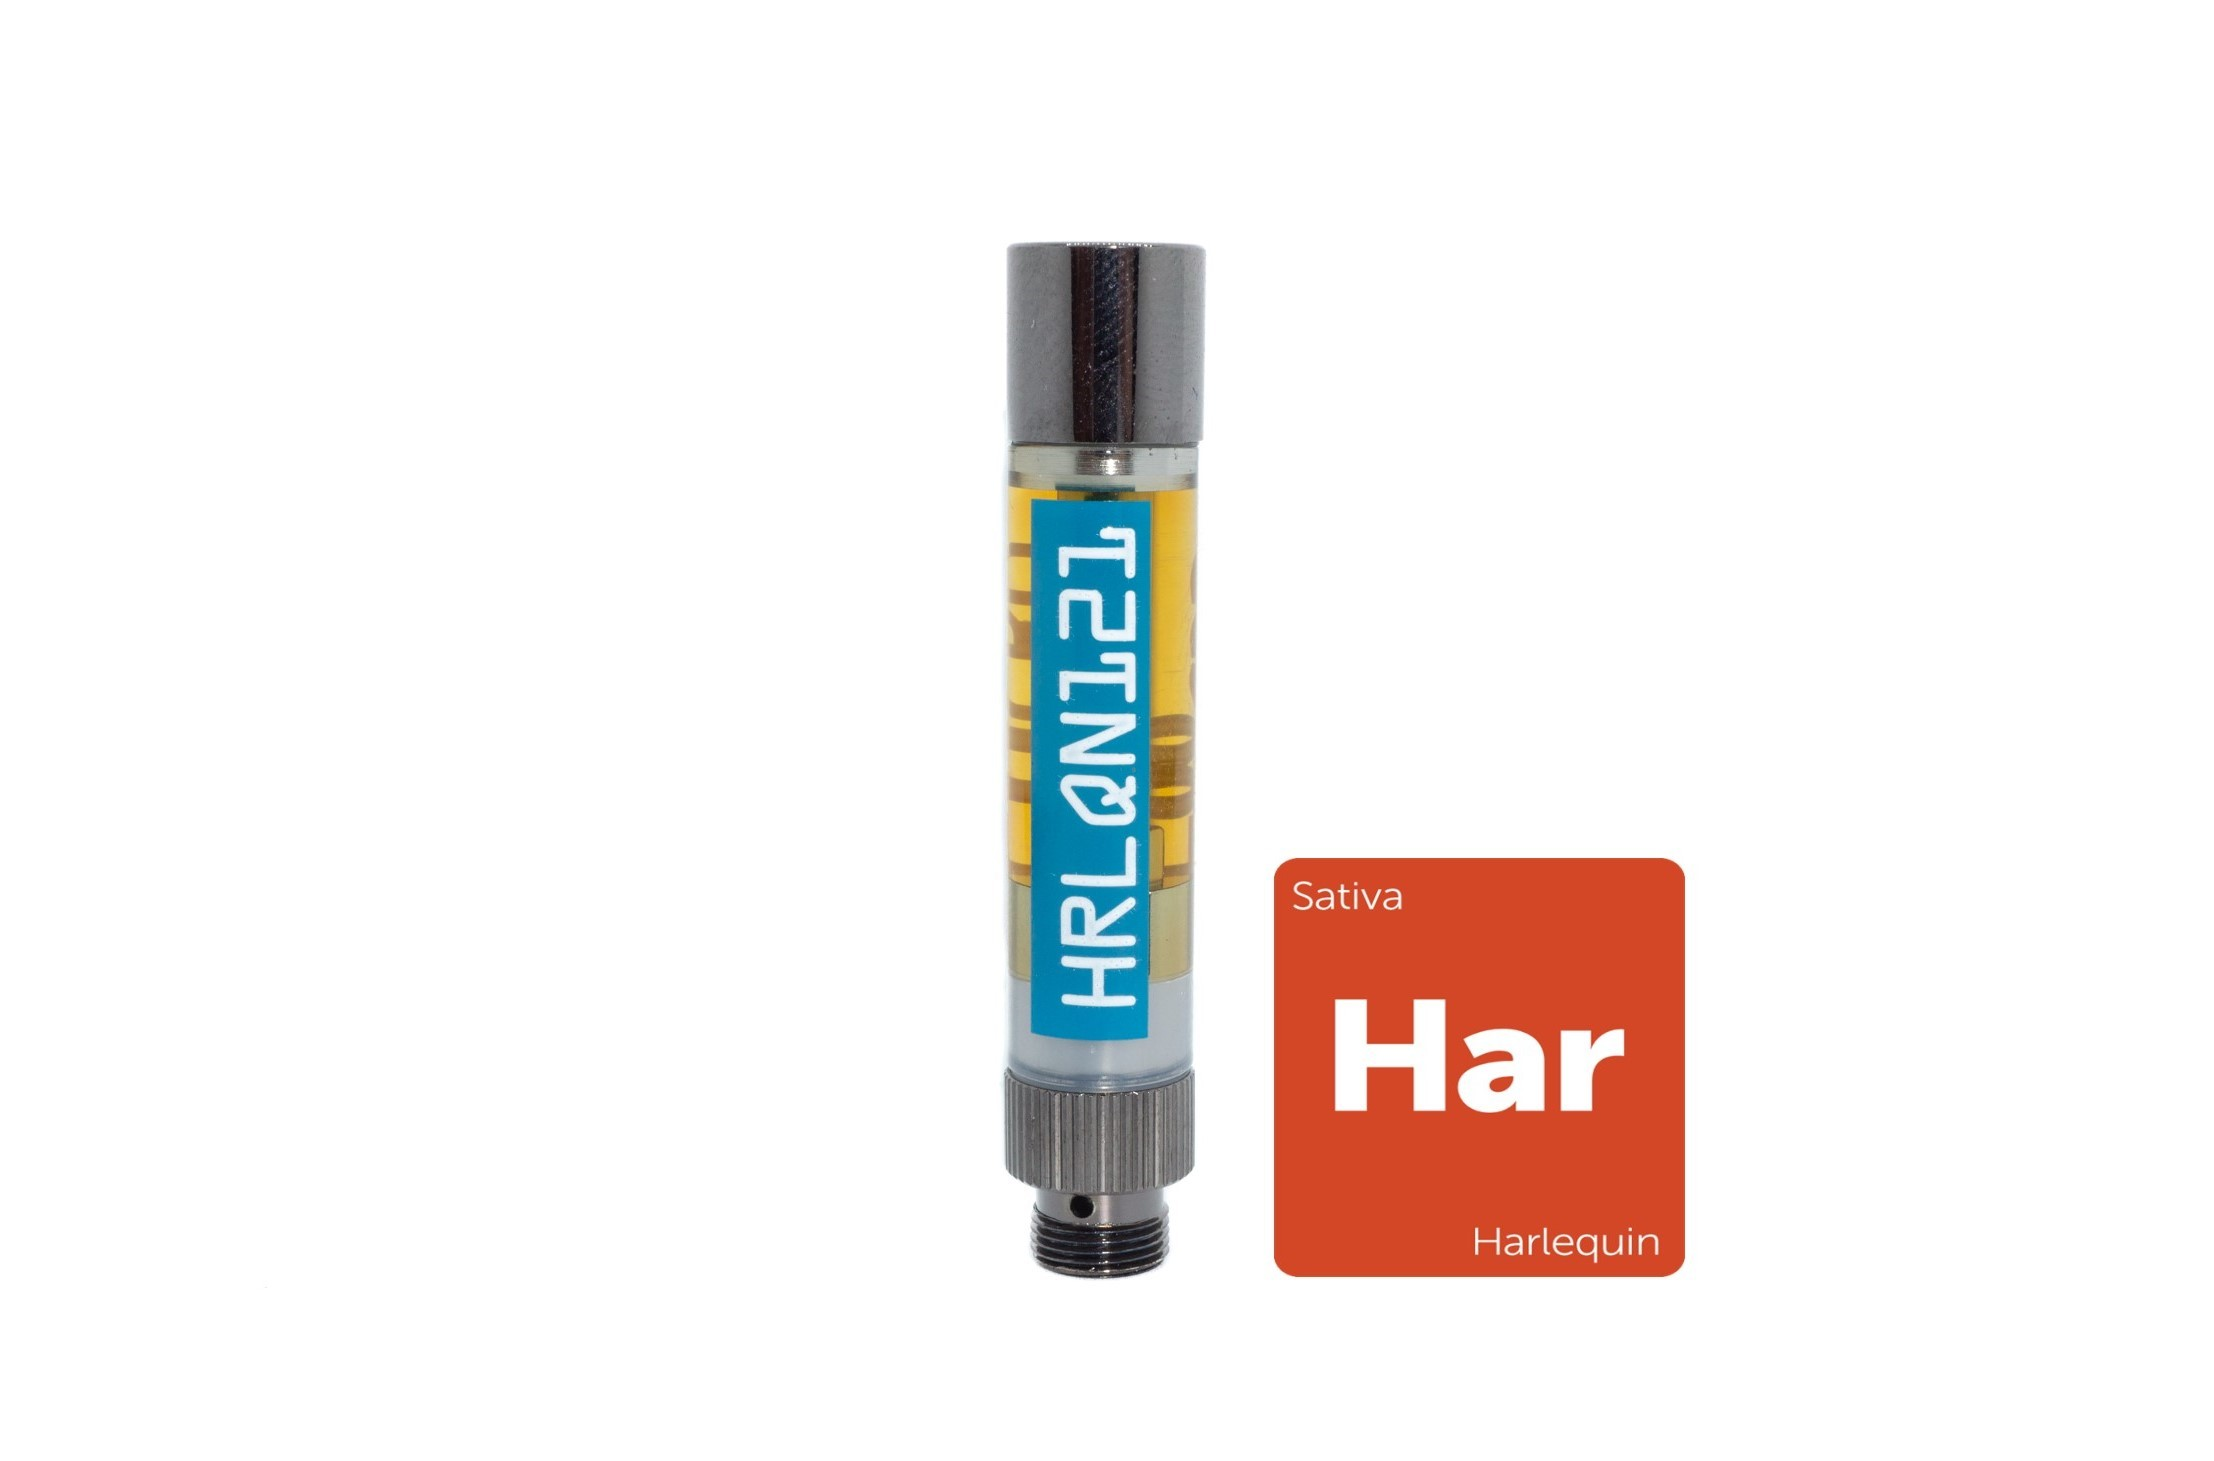 Harlequin (1:1) CBD Replacement Cartridge by Keyy 01162